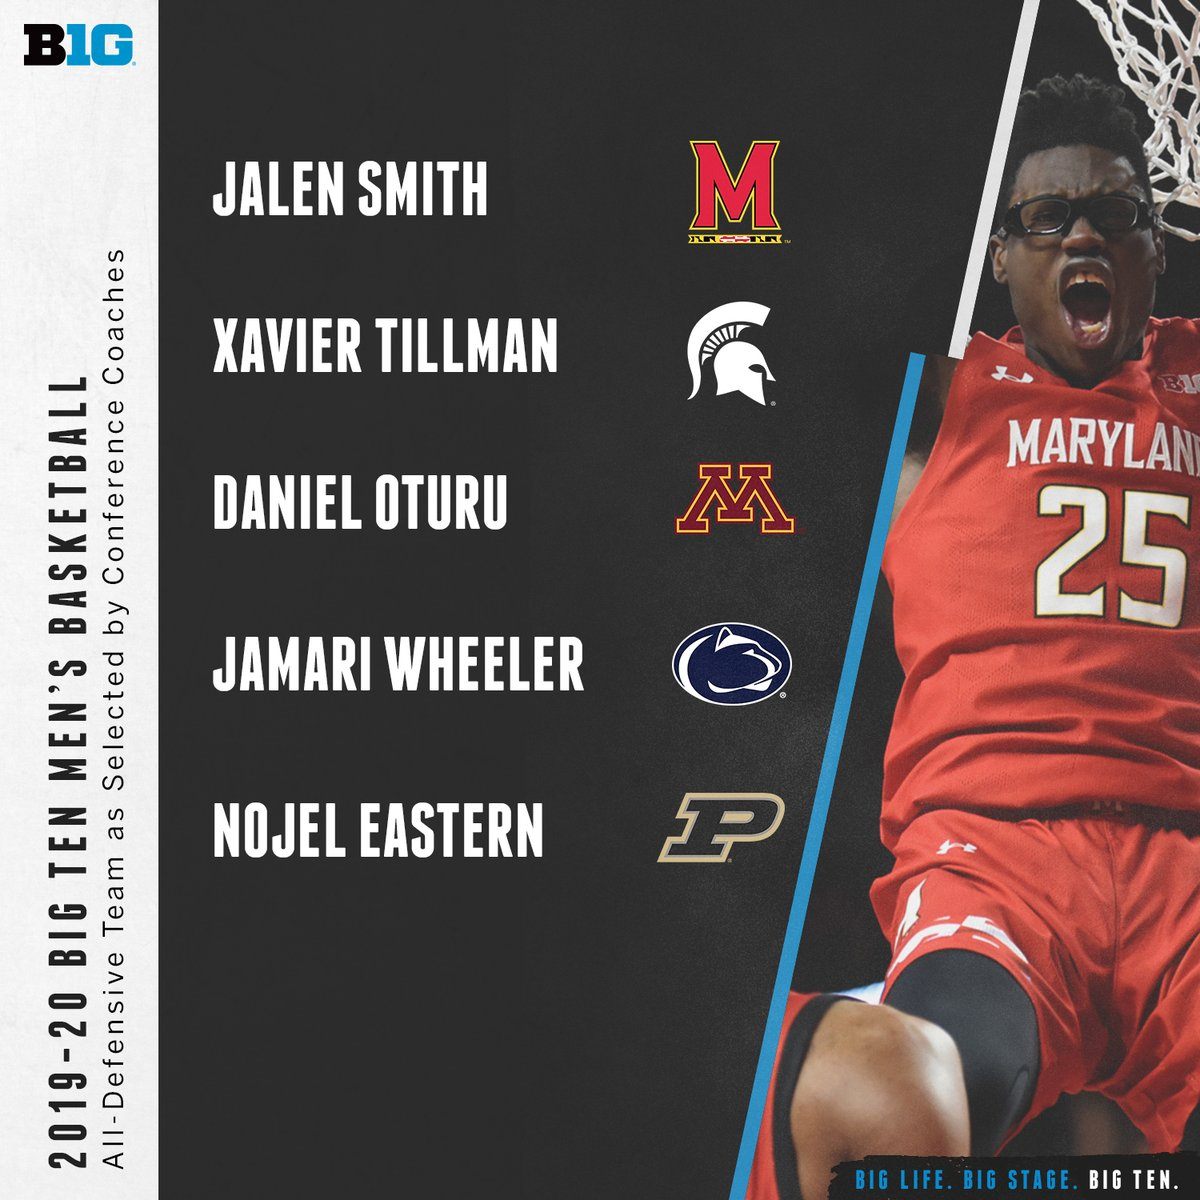 The 2019-20 Big Ten Men's Basketball All-Defensive Team as selected by conference coaches. #B1GMBBall